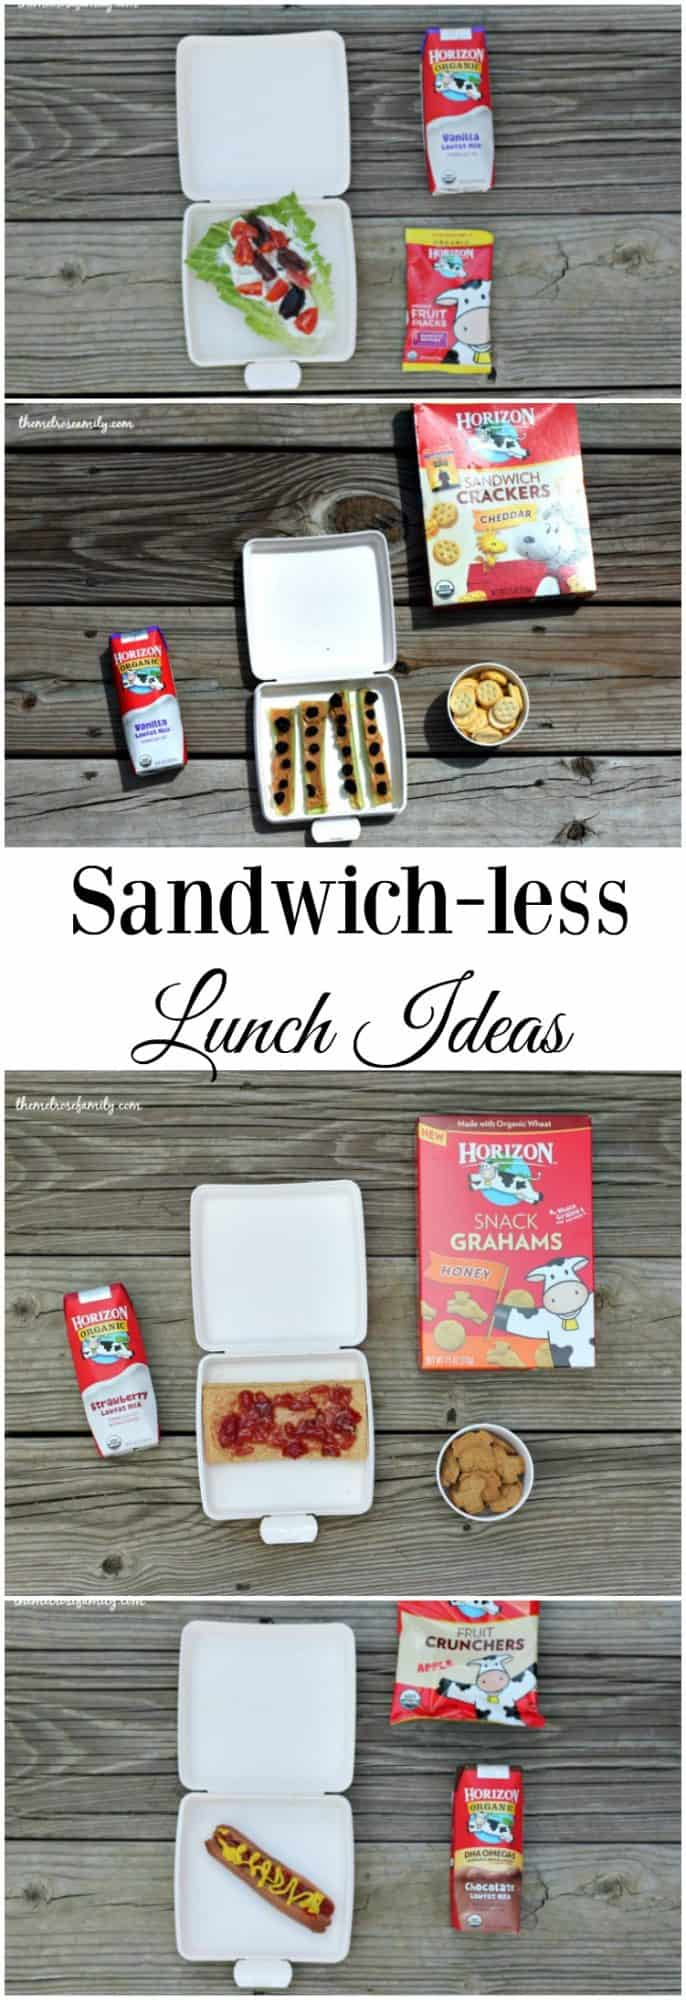 Tired of the same old school lunches every day? These sandwich-less lunch ideas paired with a snack and drink will have your kids asking for more!